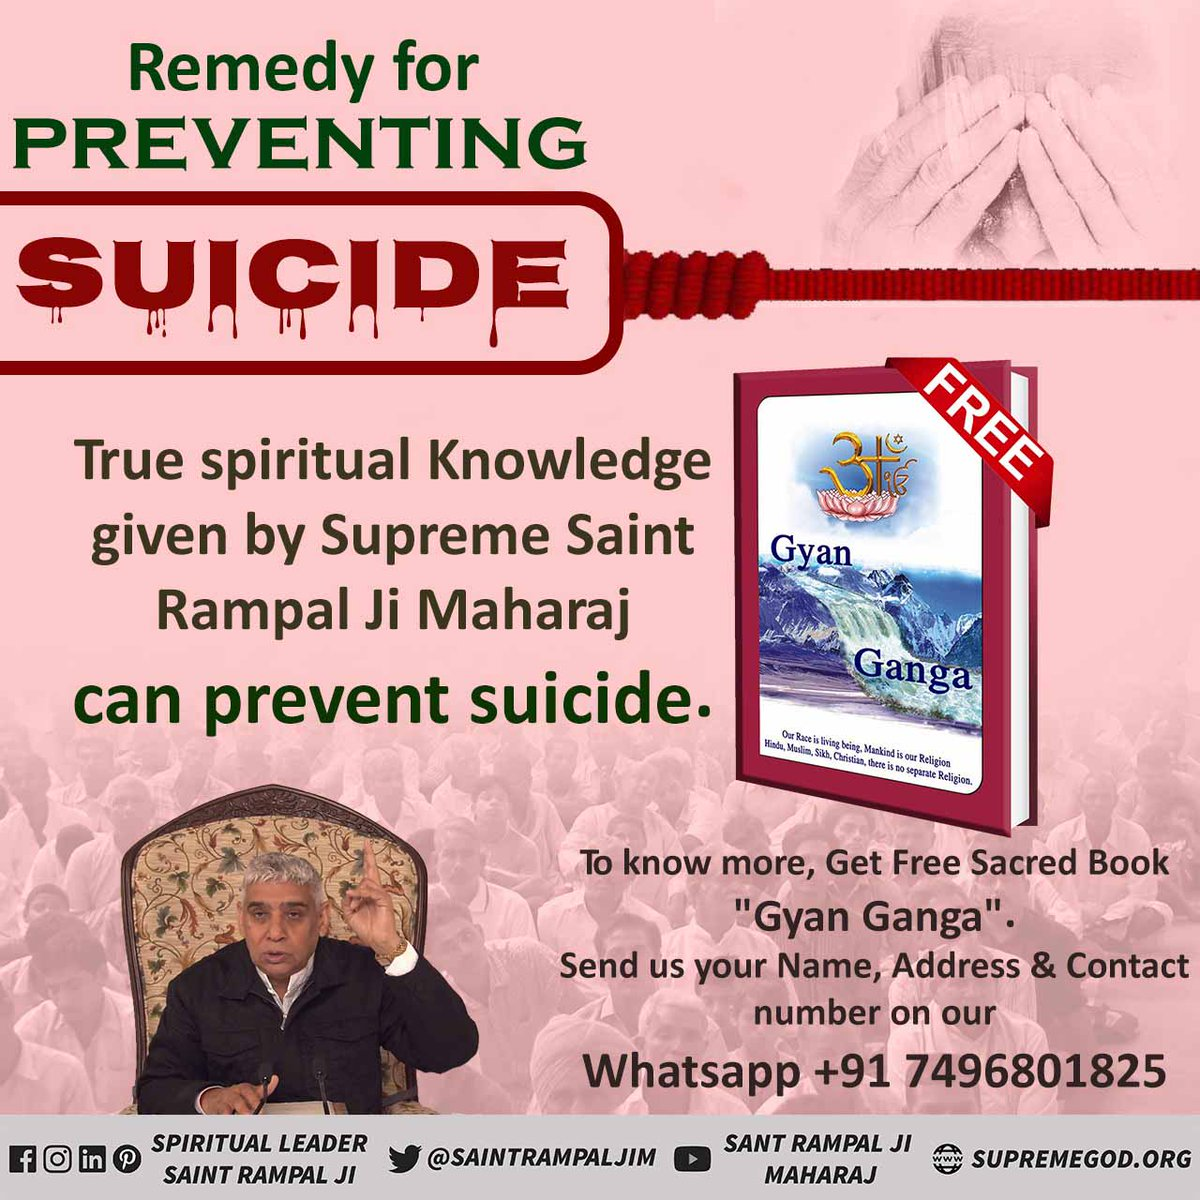 #Solution_To_Suicide Its complete stupidity to destroy the precious human life which is even desired by deities. It's only human life in which we can rightly worship supreme lord and attain ultimate peace and salvation along with all happiness of this world as well.